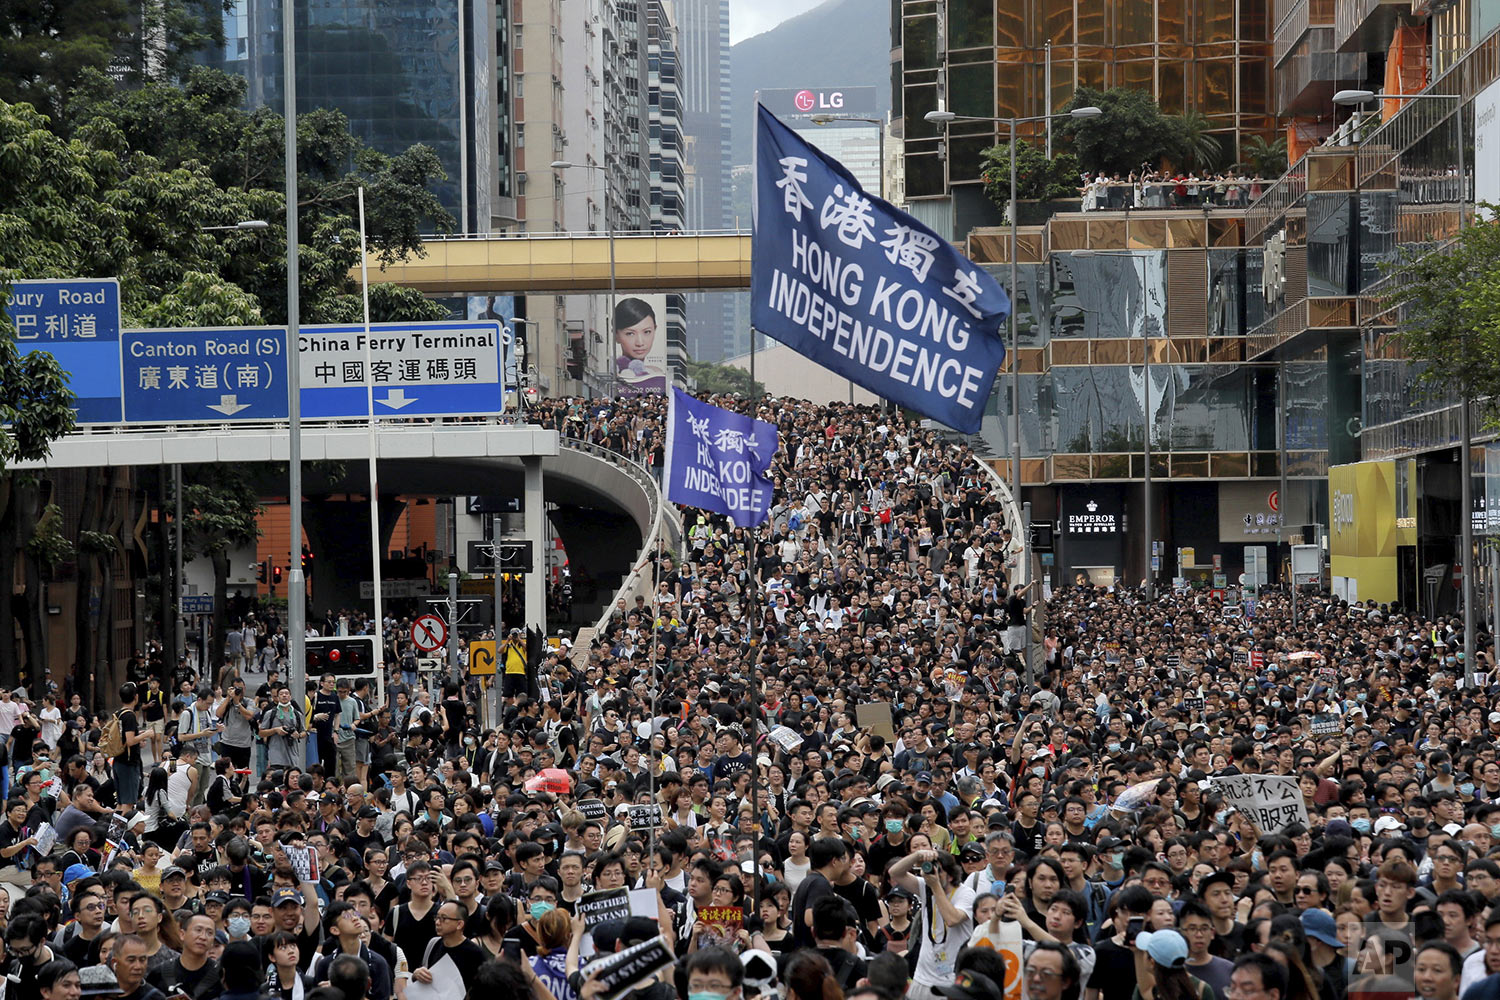 Protesters march with a flag calling for Hong Kong independence in Hong Kong, Sunday, July 7, 2019 (AP Photo/Kin Cheung)